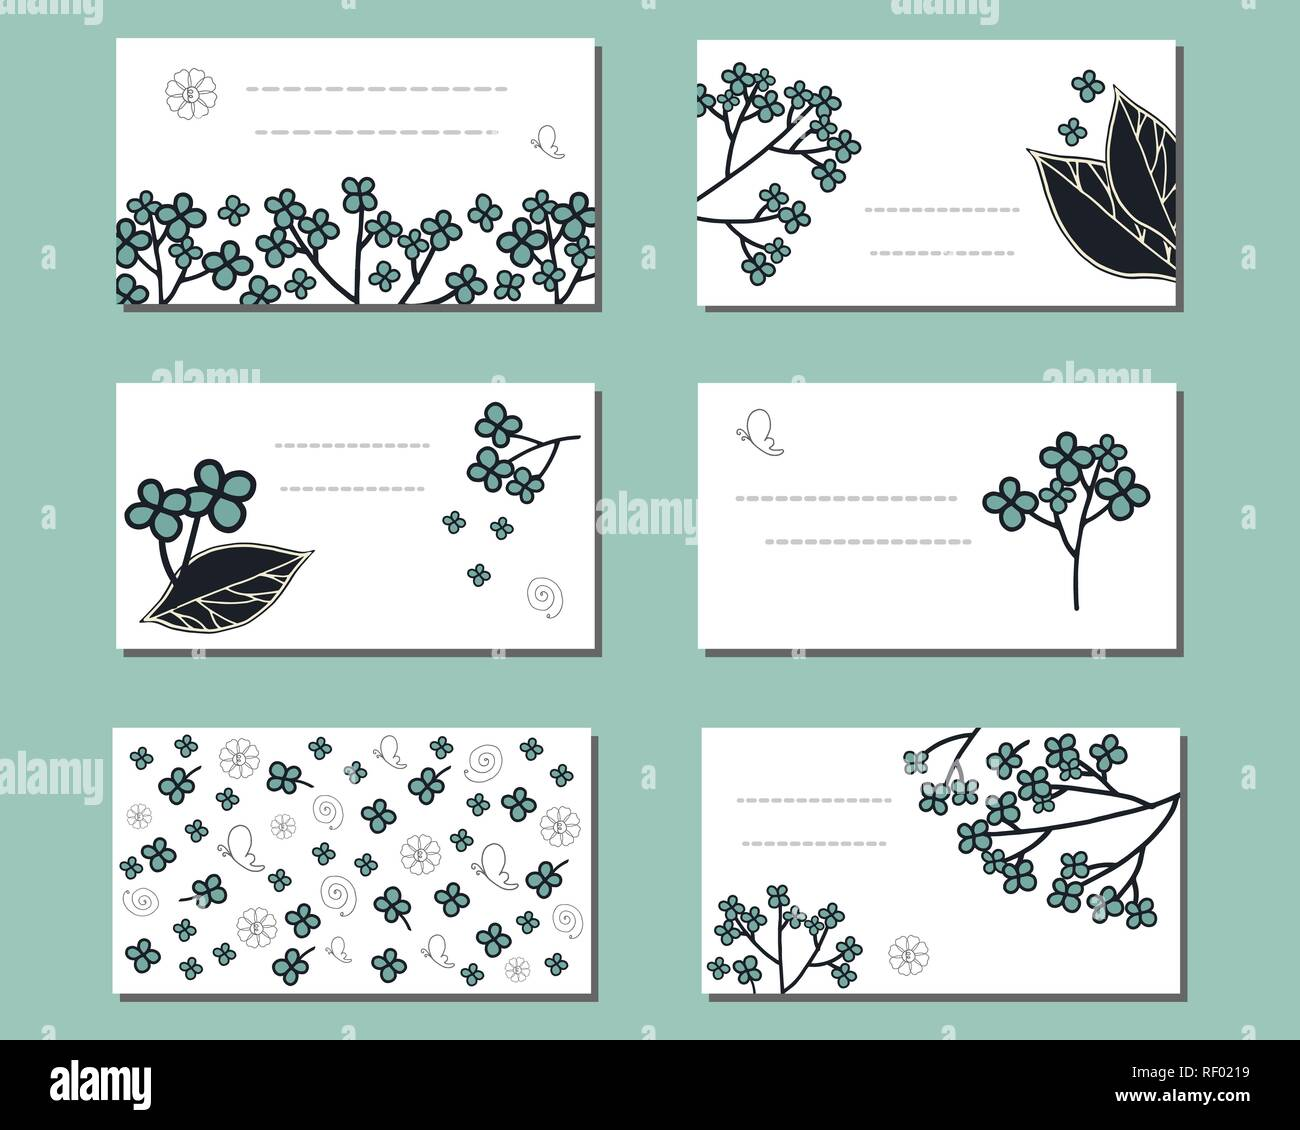 Floral Templates With Cute Bunches Of Doodle Flowers For Design